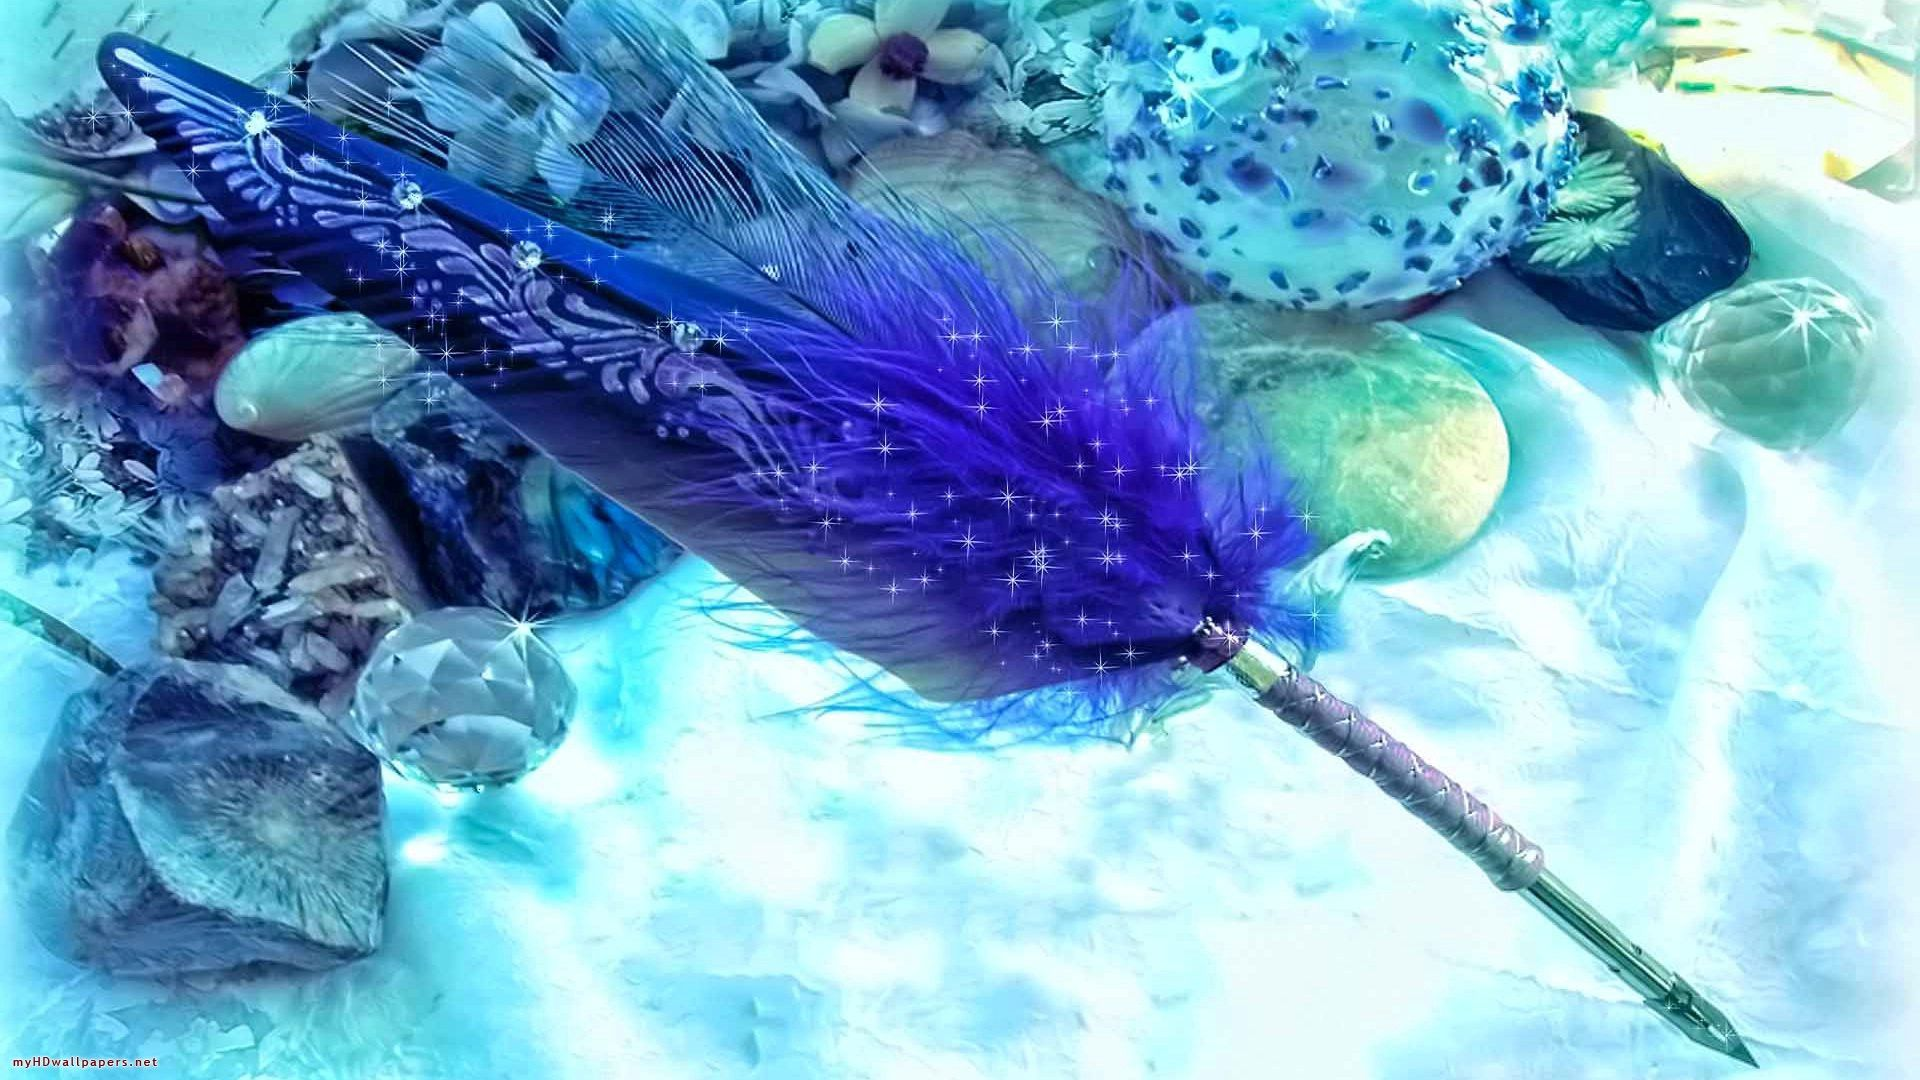 Feather Bloom hd image